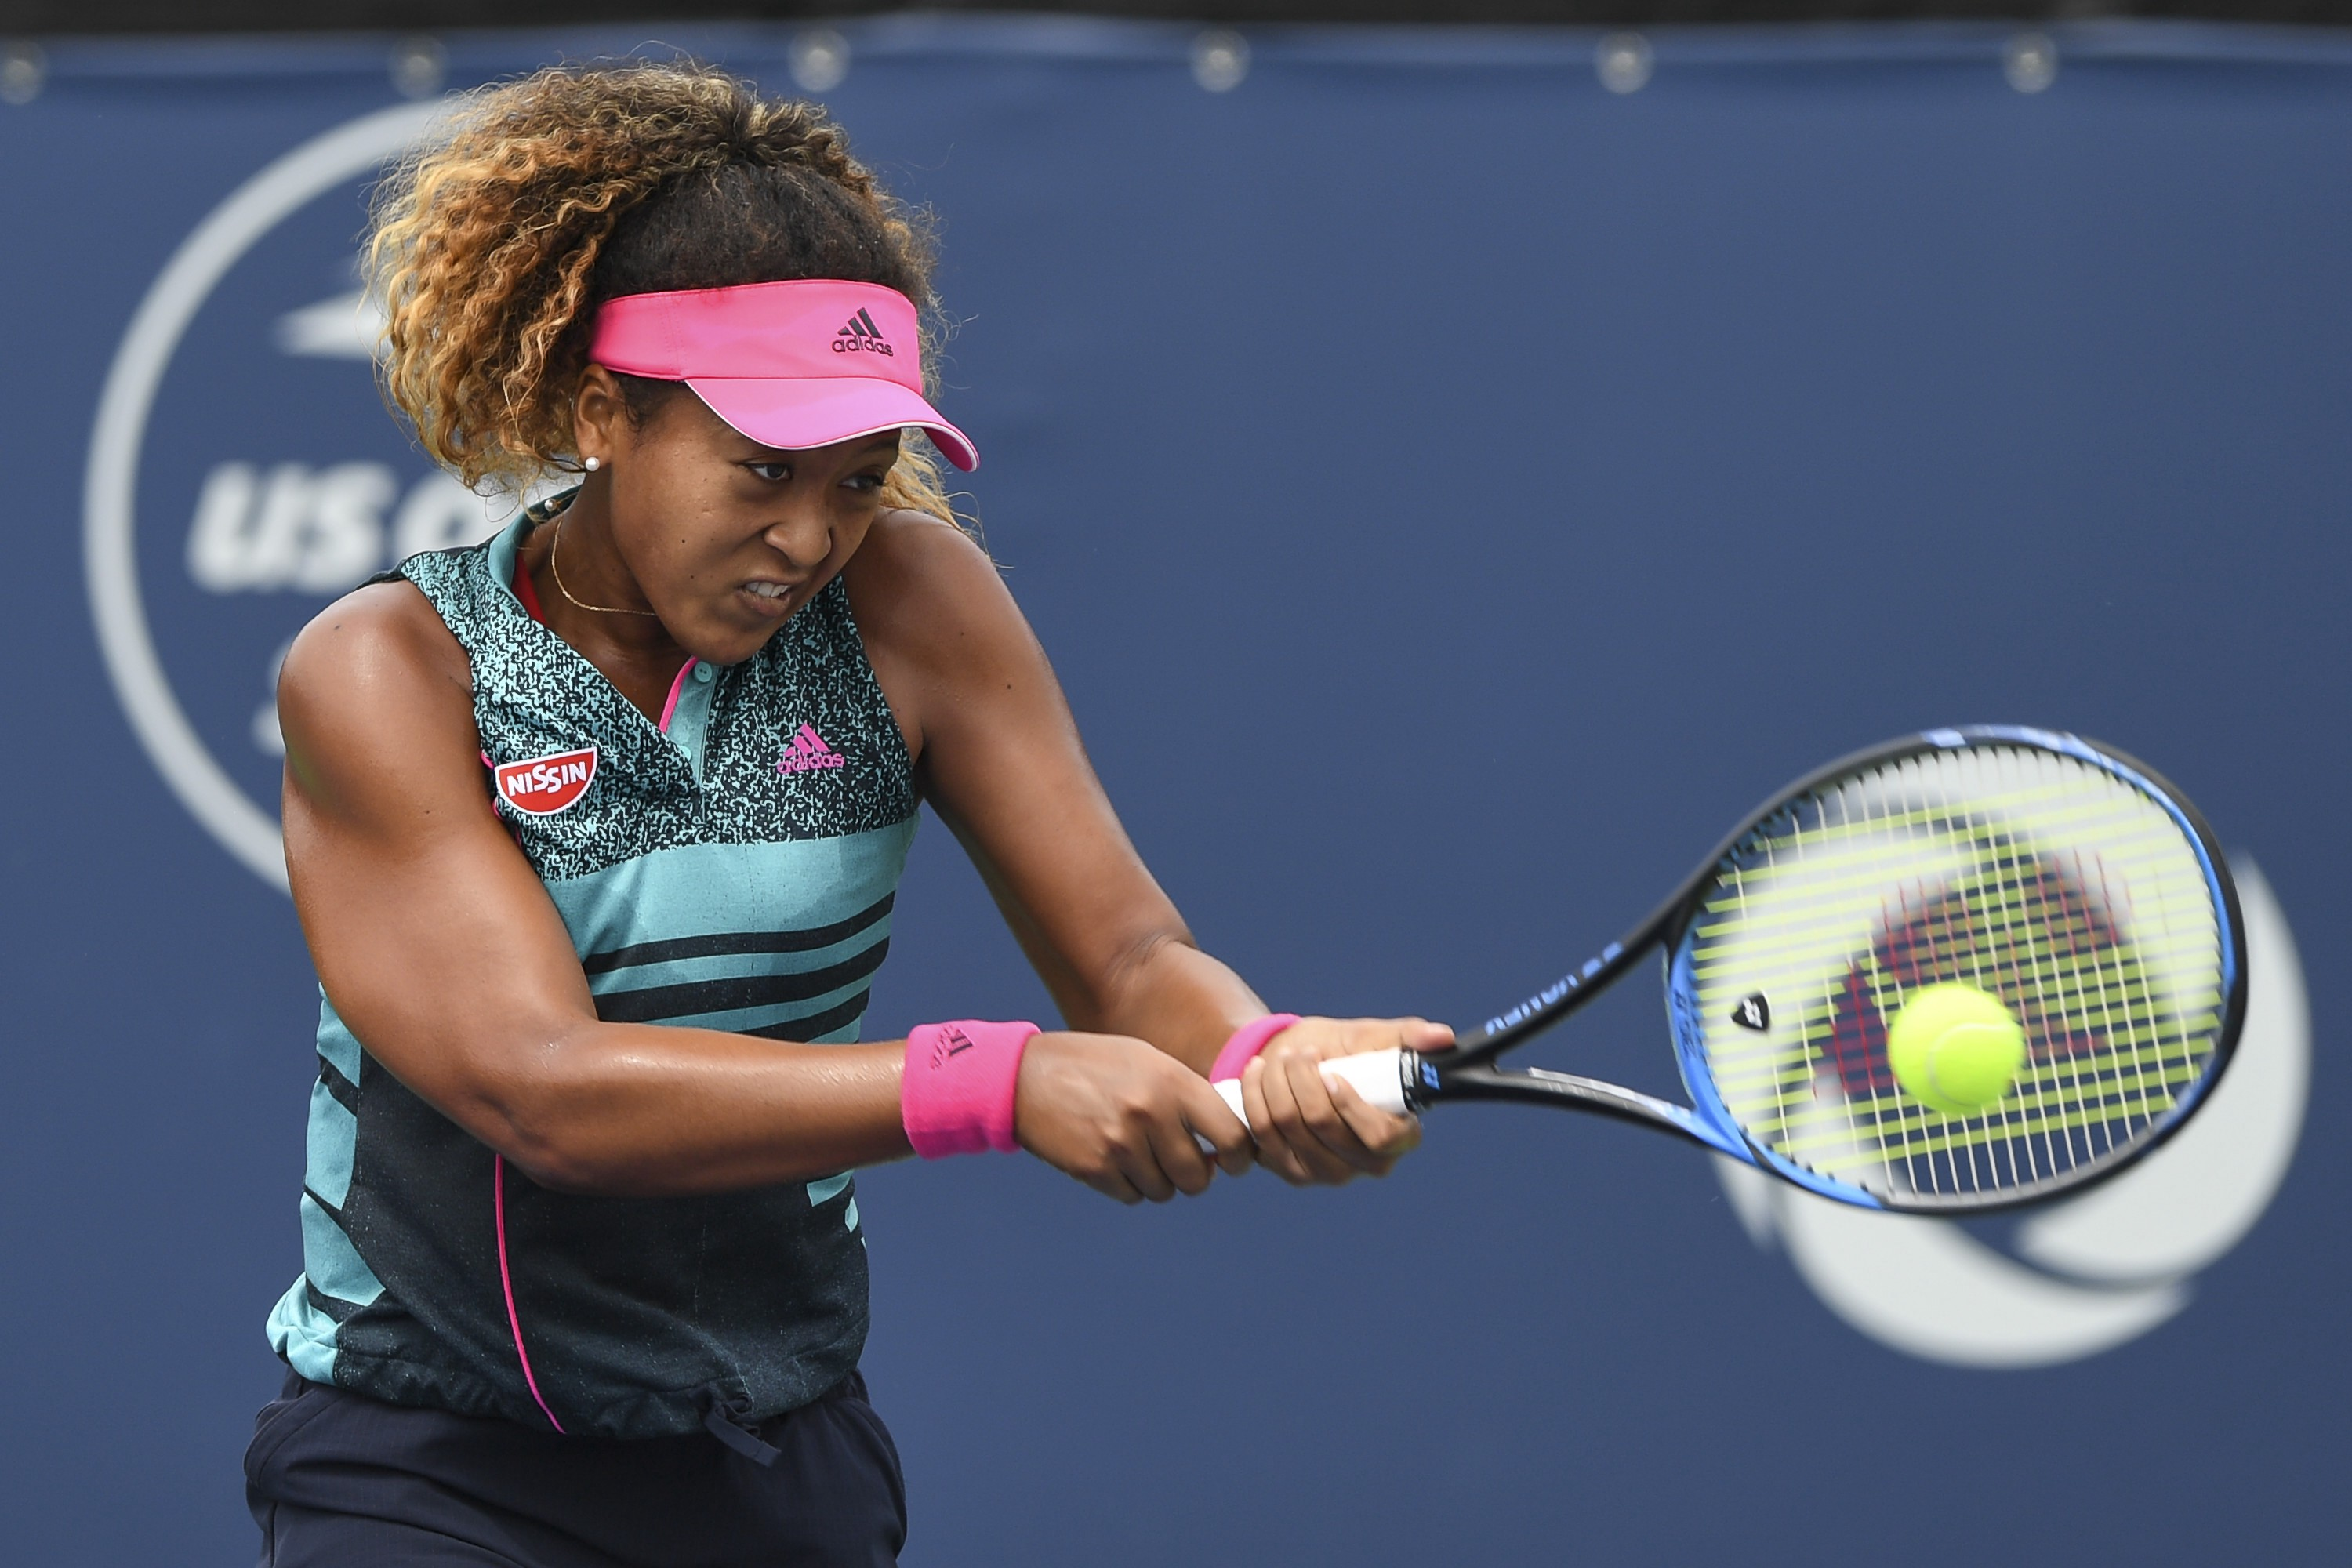 Naomi Osaka S Breakthrough Game The 20 Year Old Is Poised To Burst Into By New York Times Magazine New York Times Magazine Medium